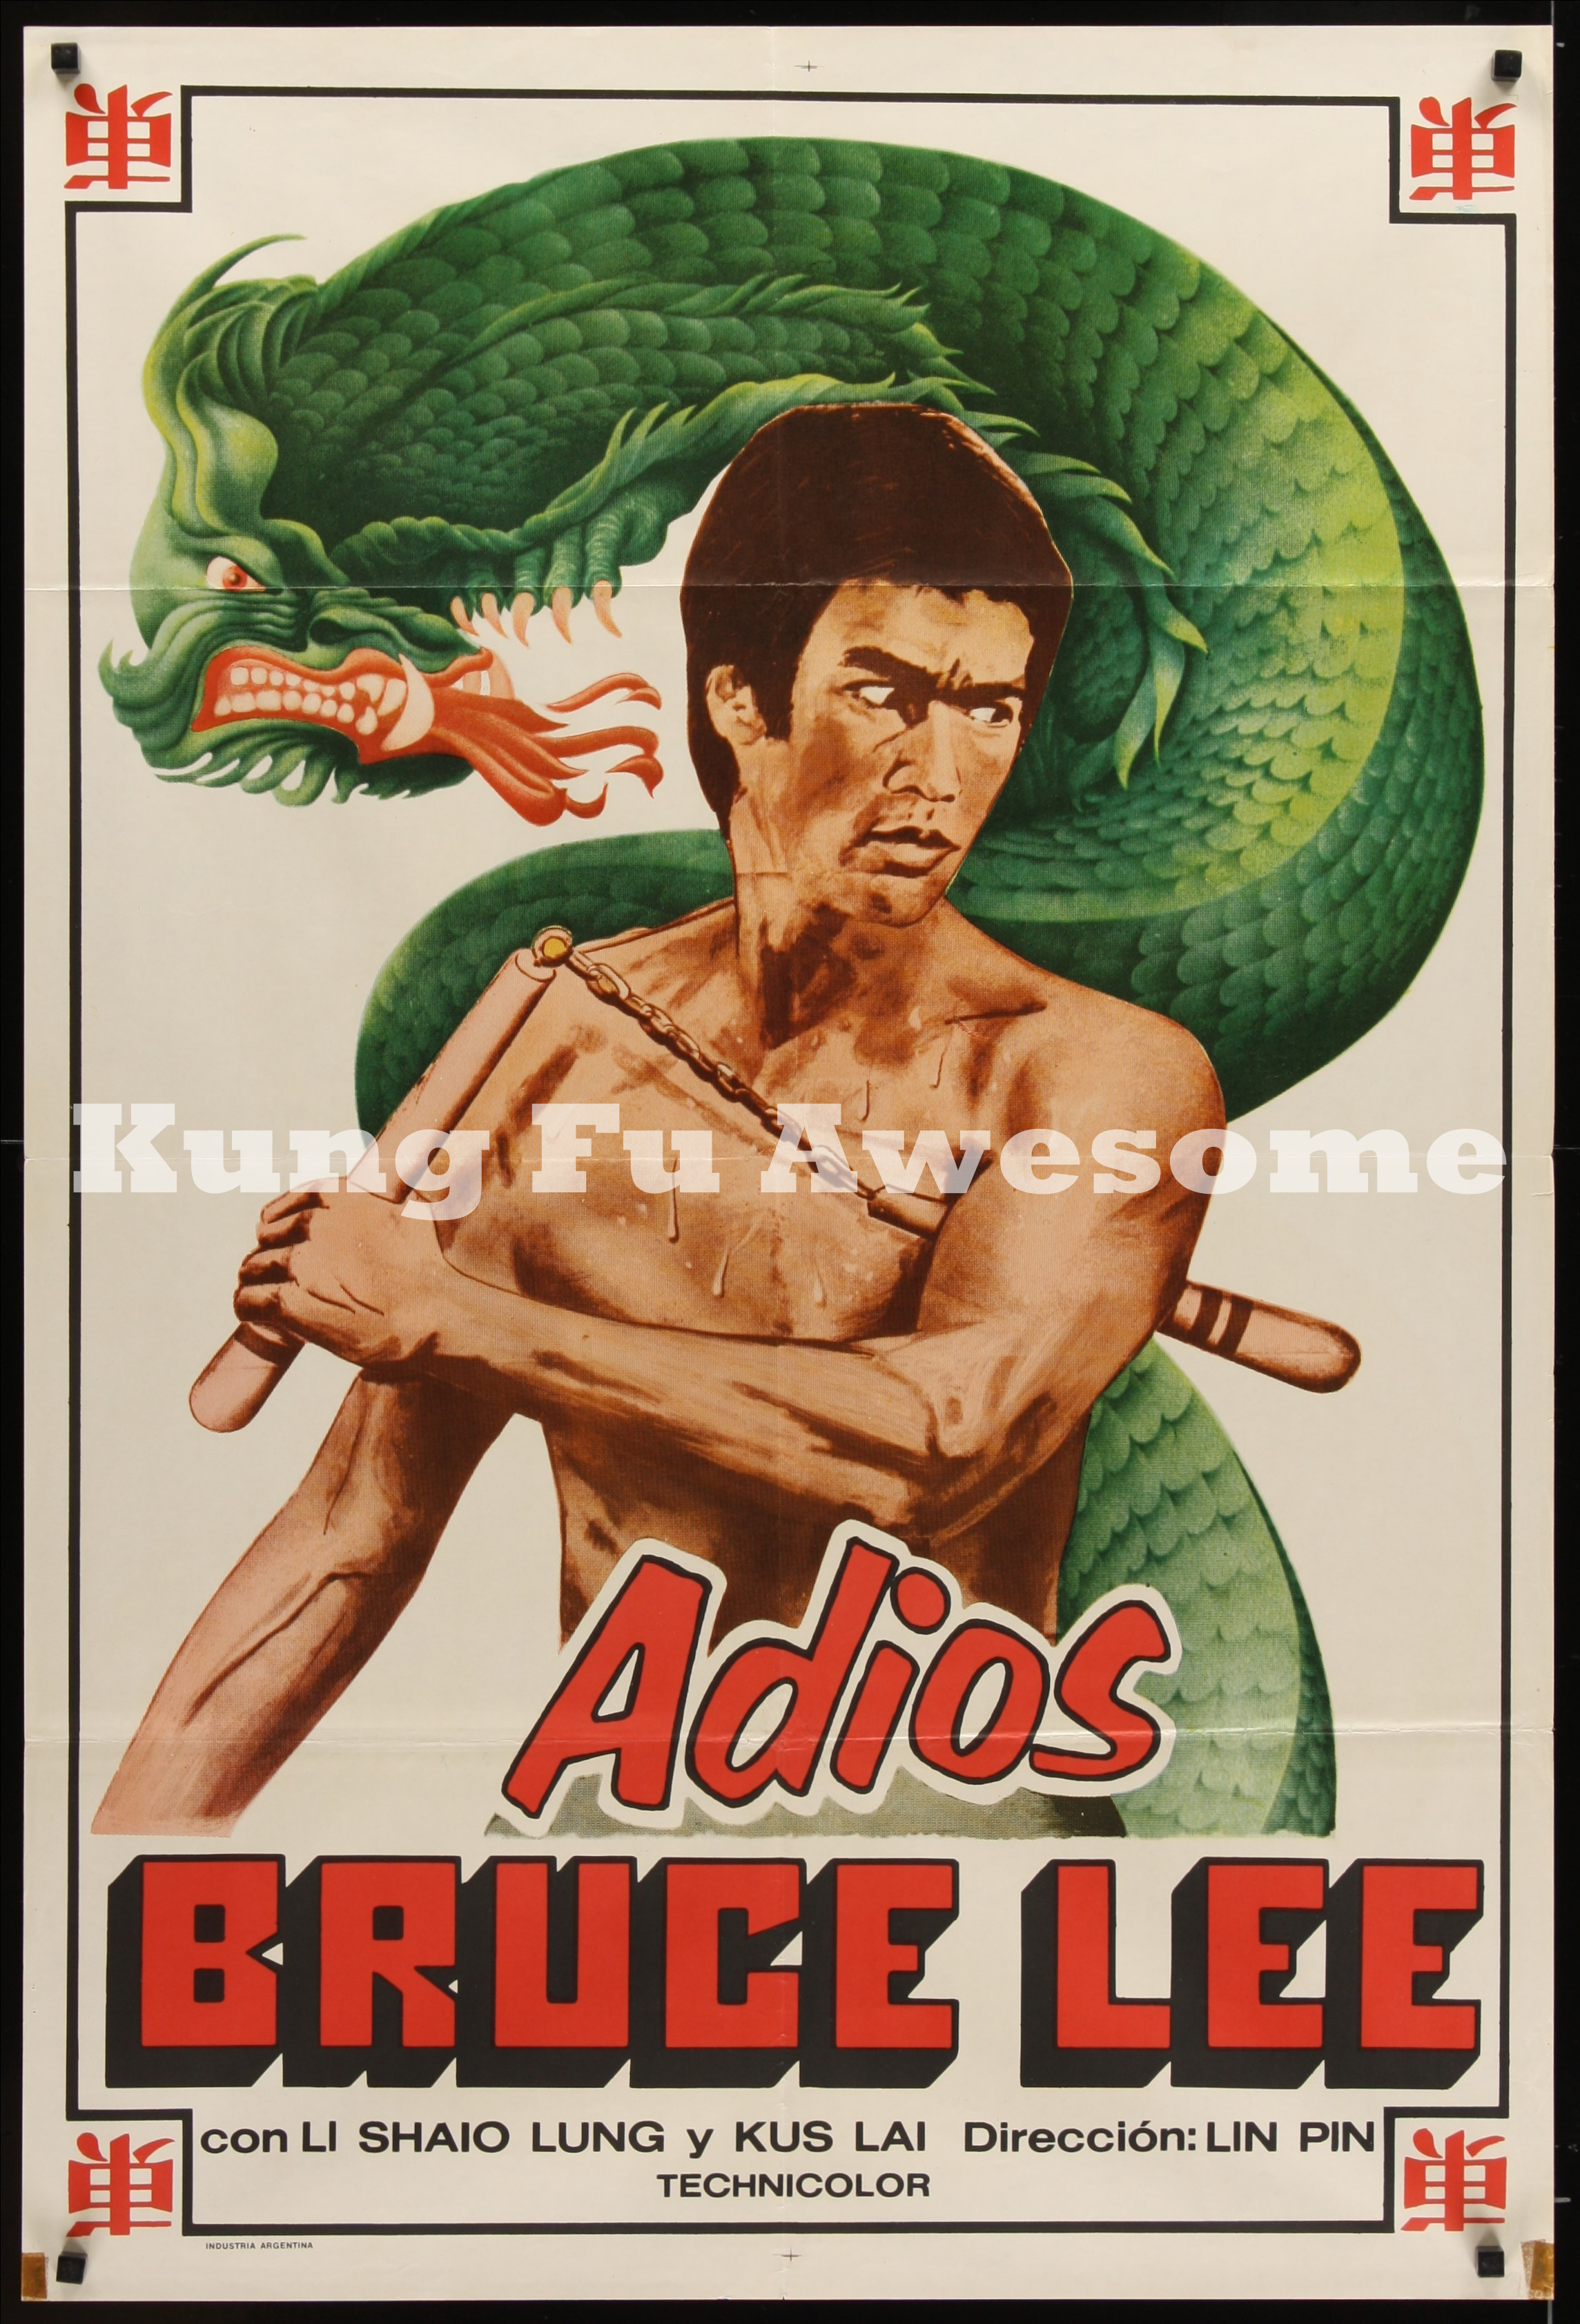 argentinean_goodbye_bruce_lee_NZ04729_L.jpg